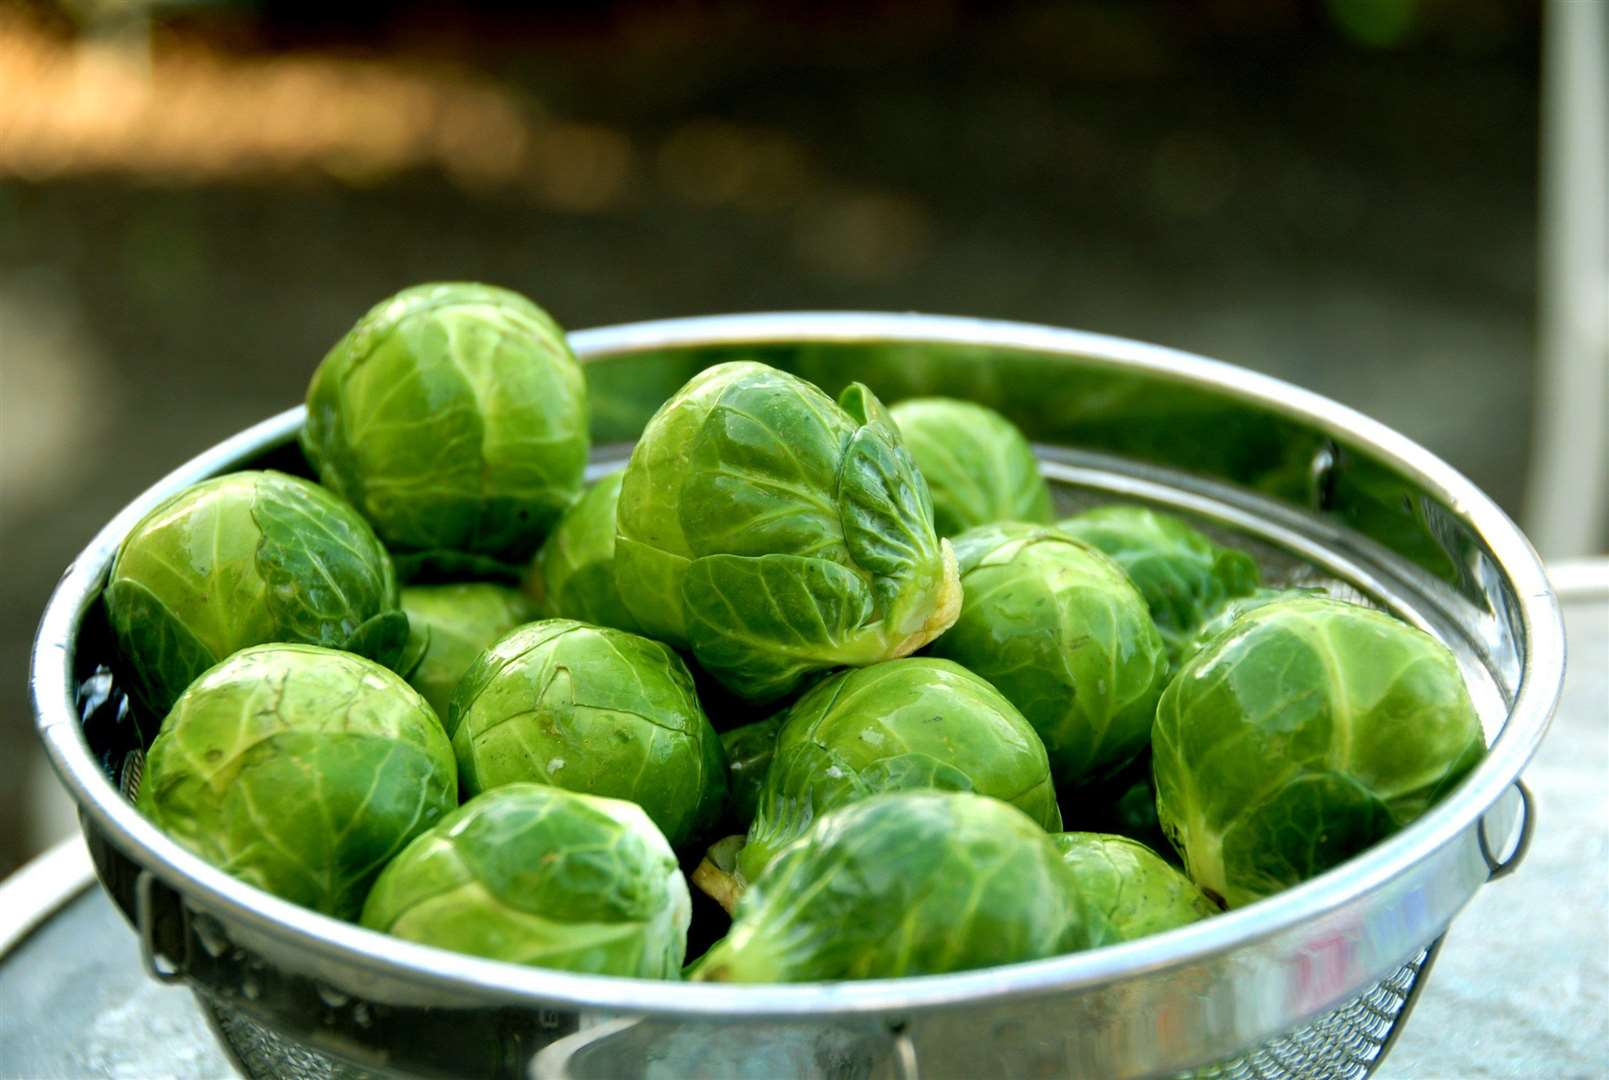 The current world record is 31 sprouts in one-minute